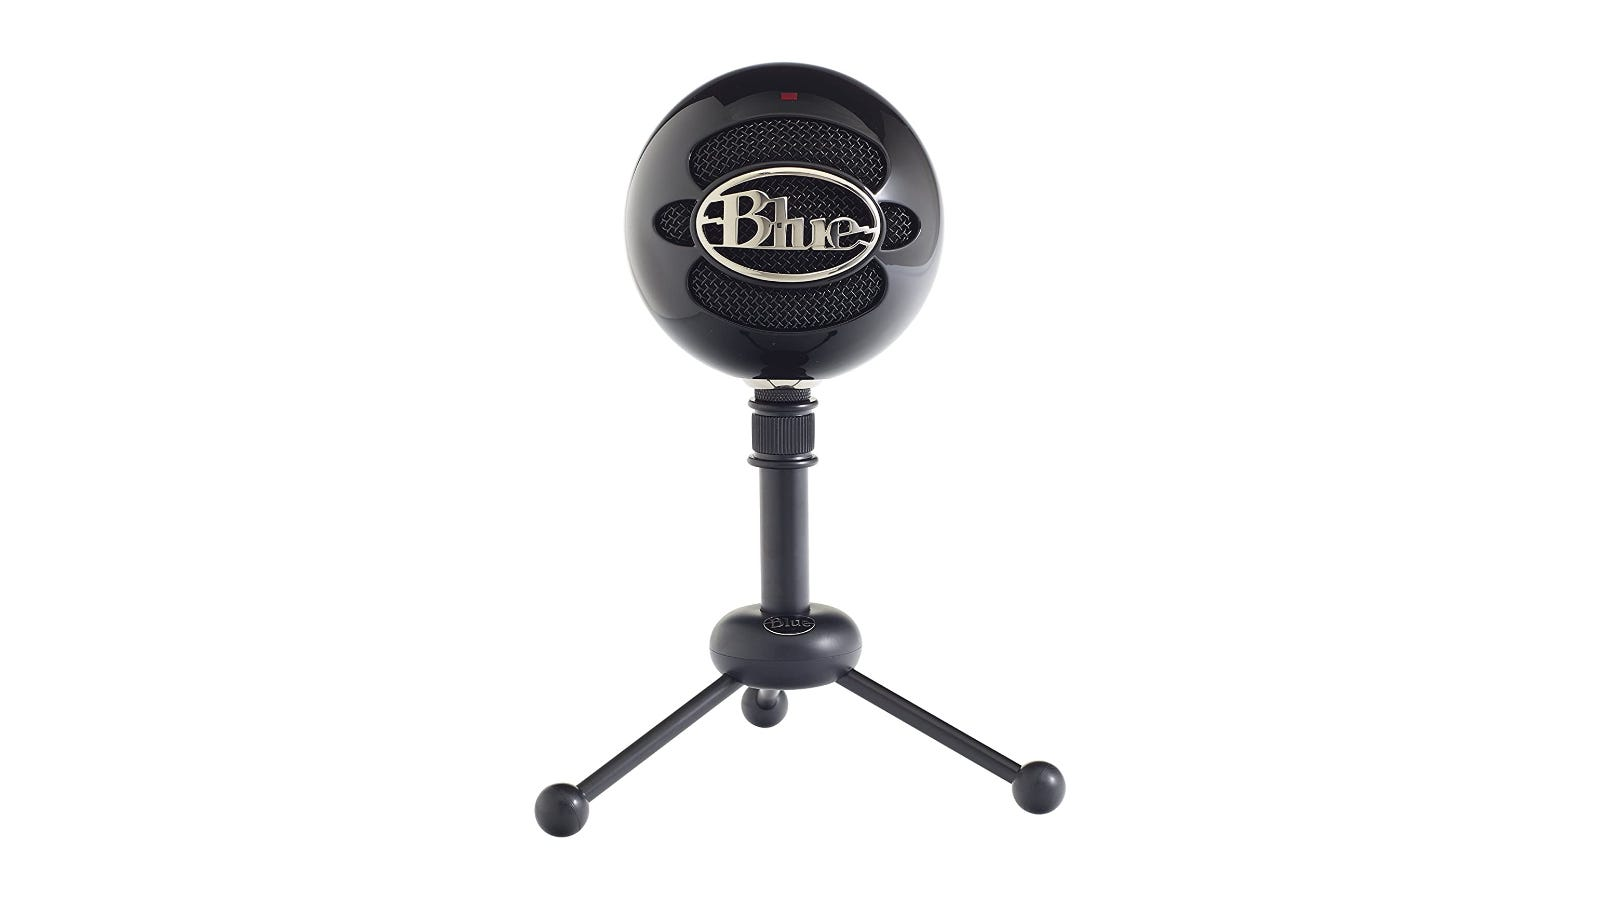 Blue Snowball microphone